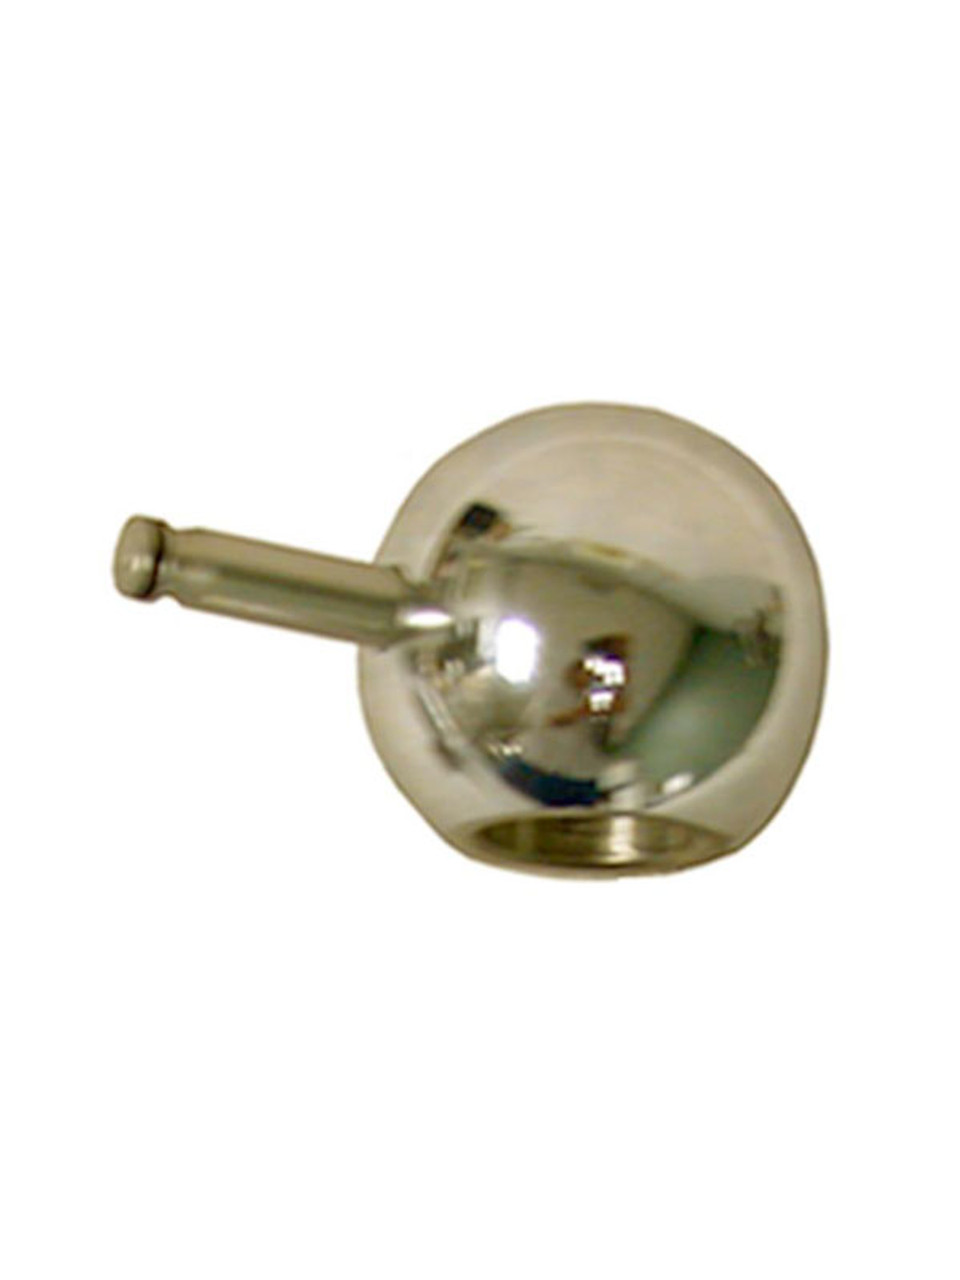 "CB401 --- Convert-A-Ball, 2"" Stainless Steel Hitch Ball"